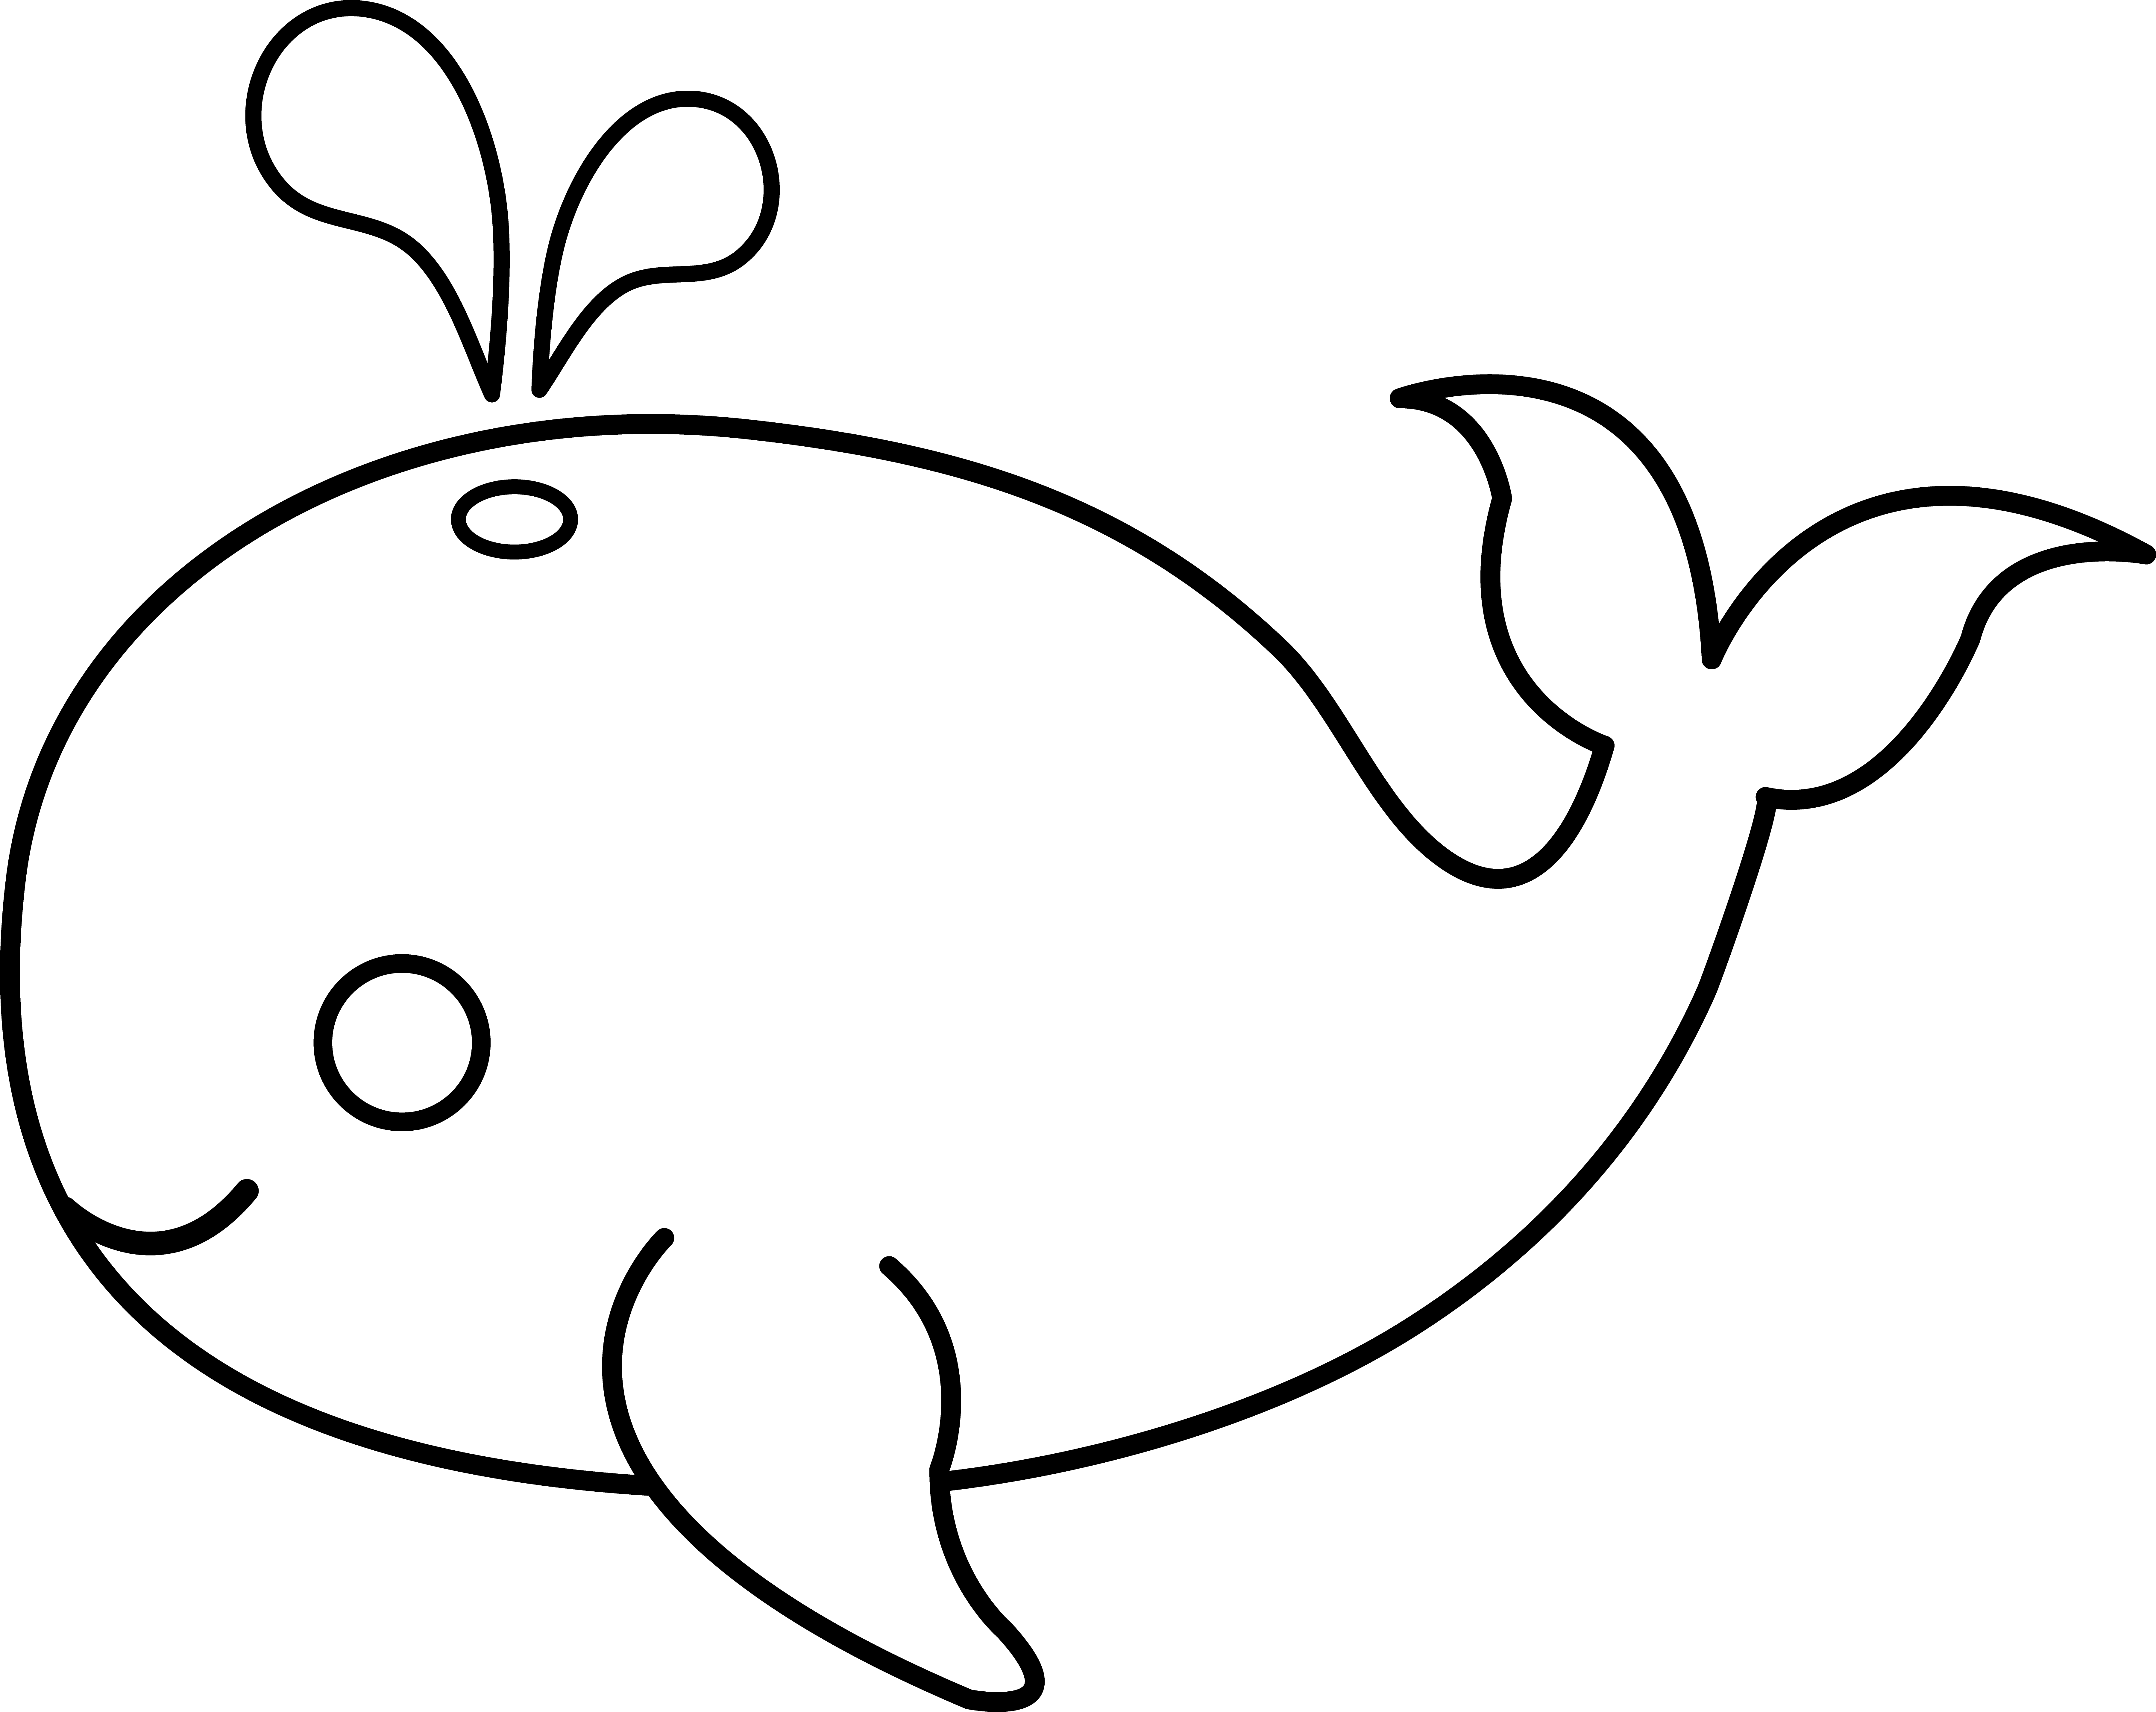 Baby fish in diaper clipart image free Whale Outline Drawing at GetDrawings.com | Free for personal use ... image free